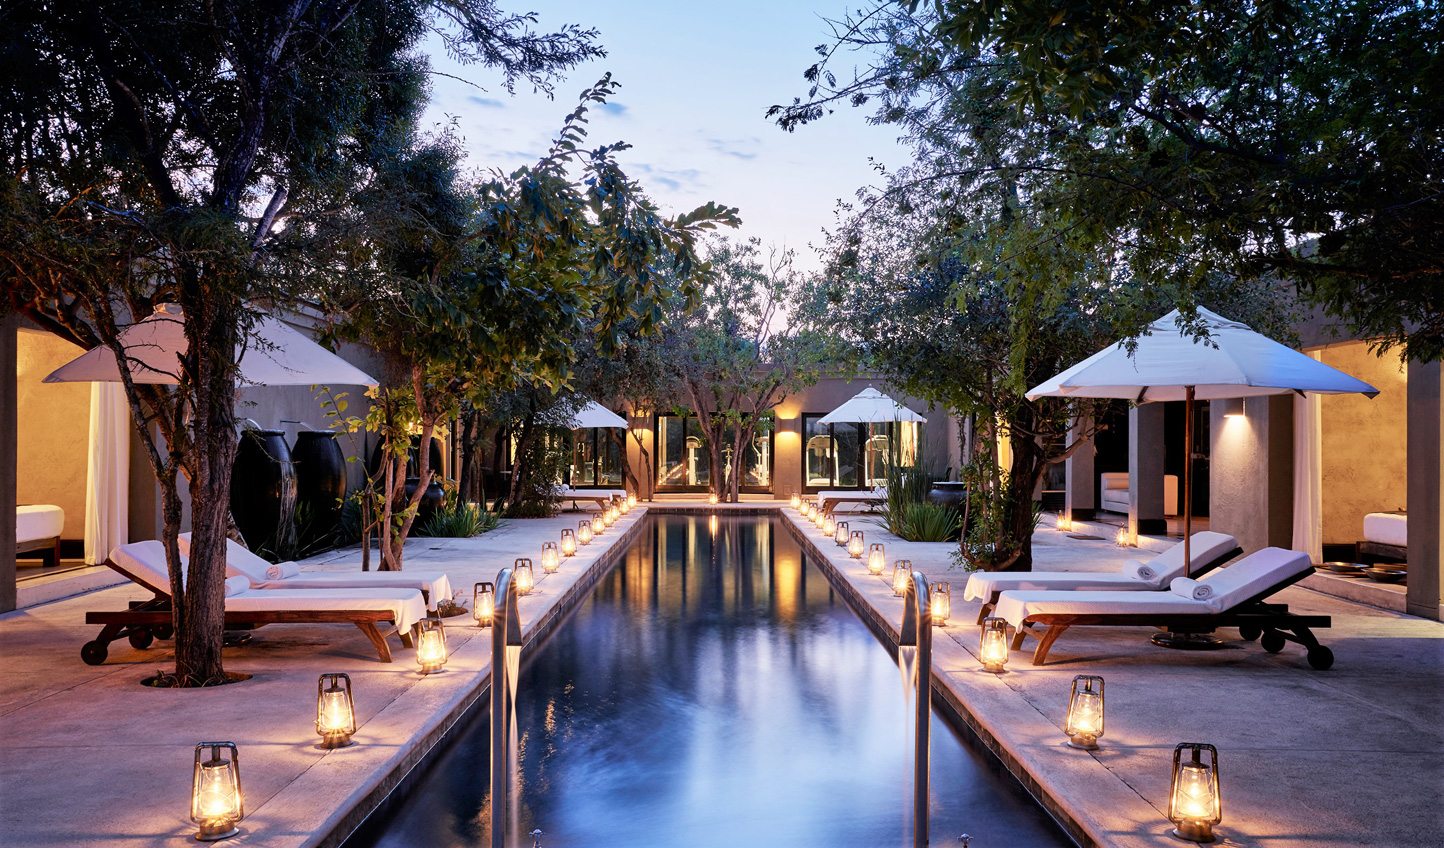 Spend your first few days in a state of bliss at the Royal Malewane